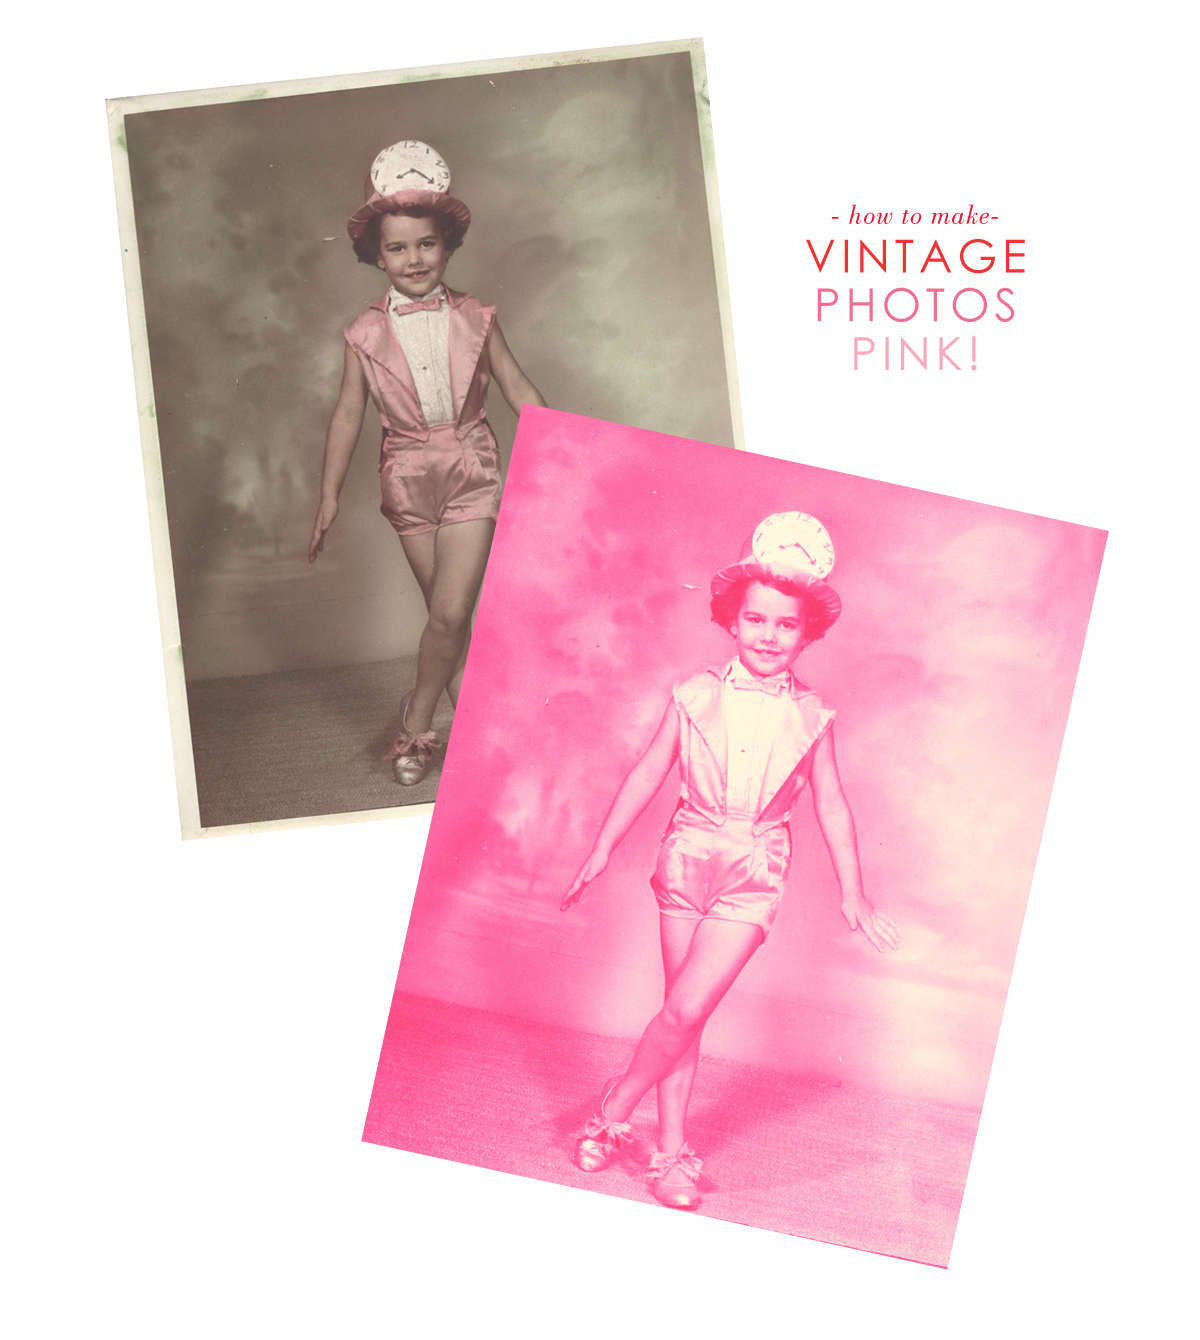 how to turn vintage photos pink